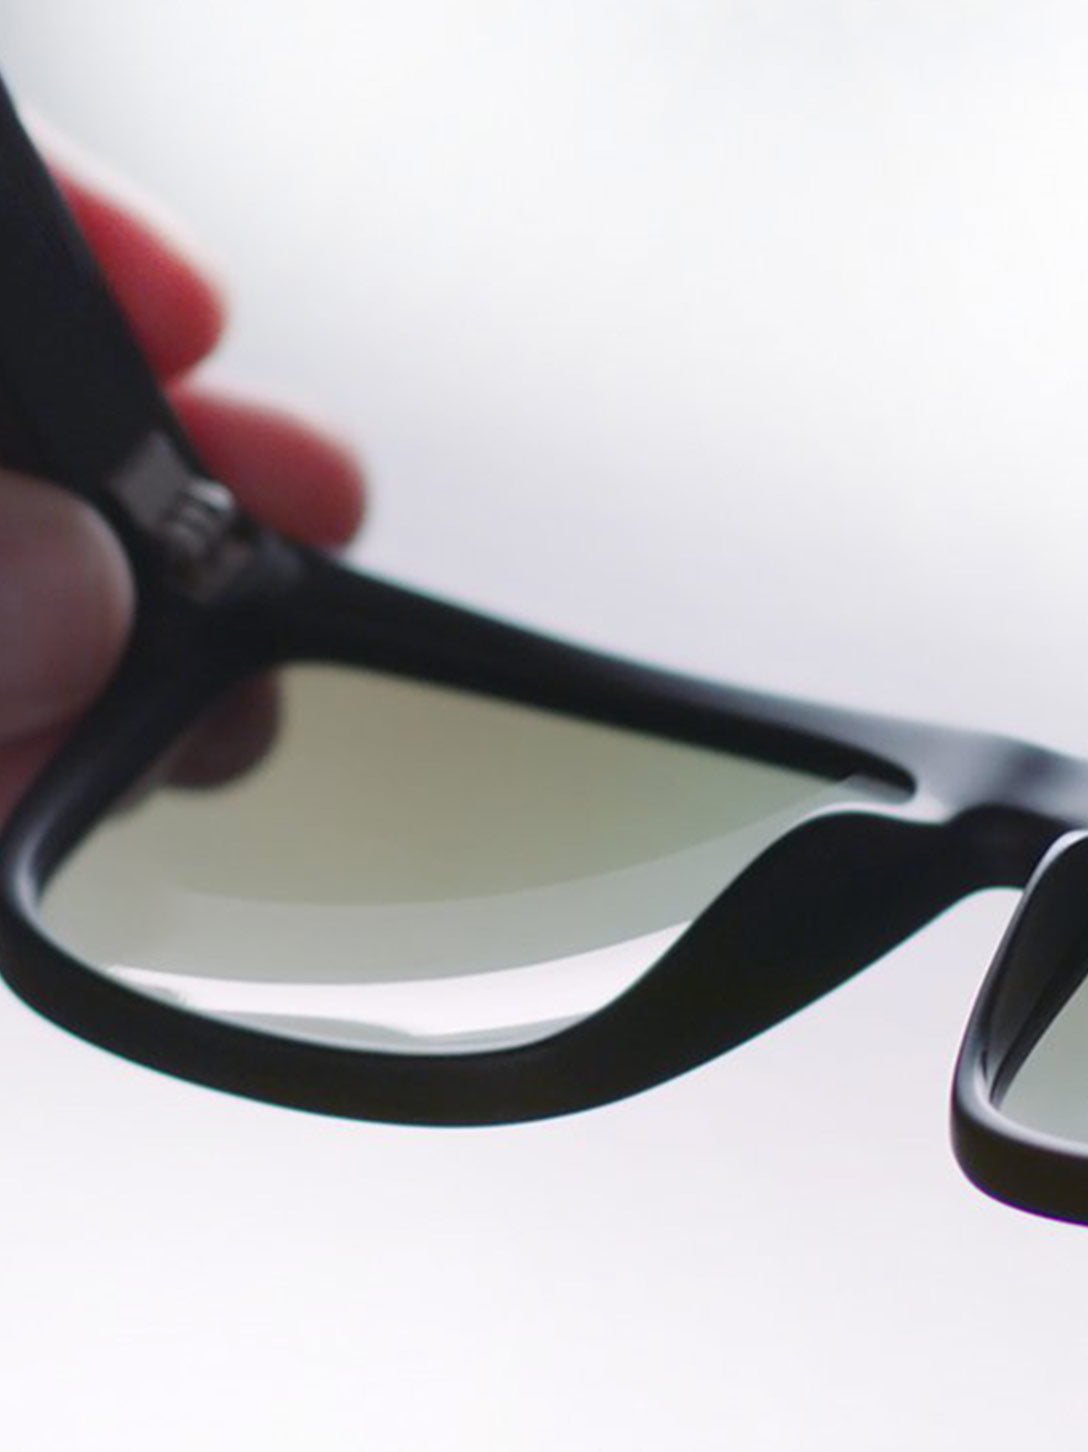 Lenses being inspected for quality in the frame